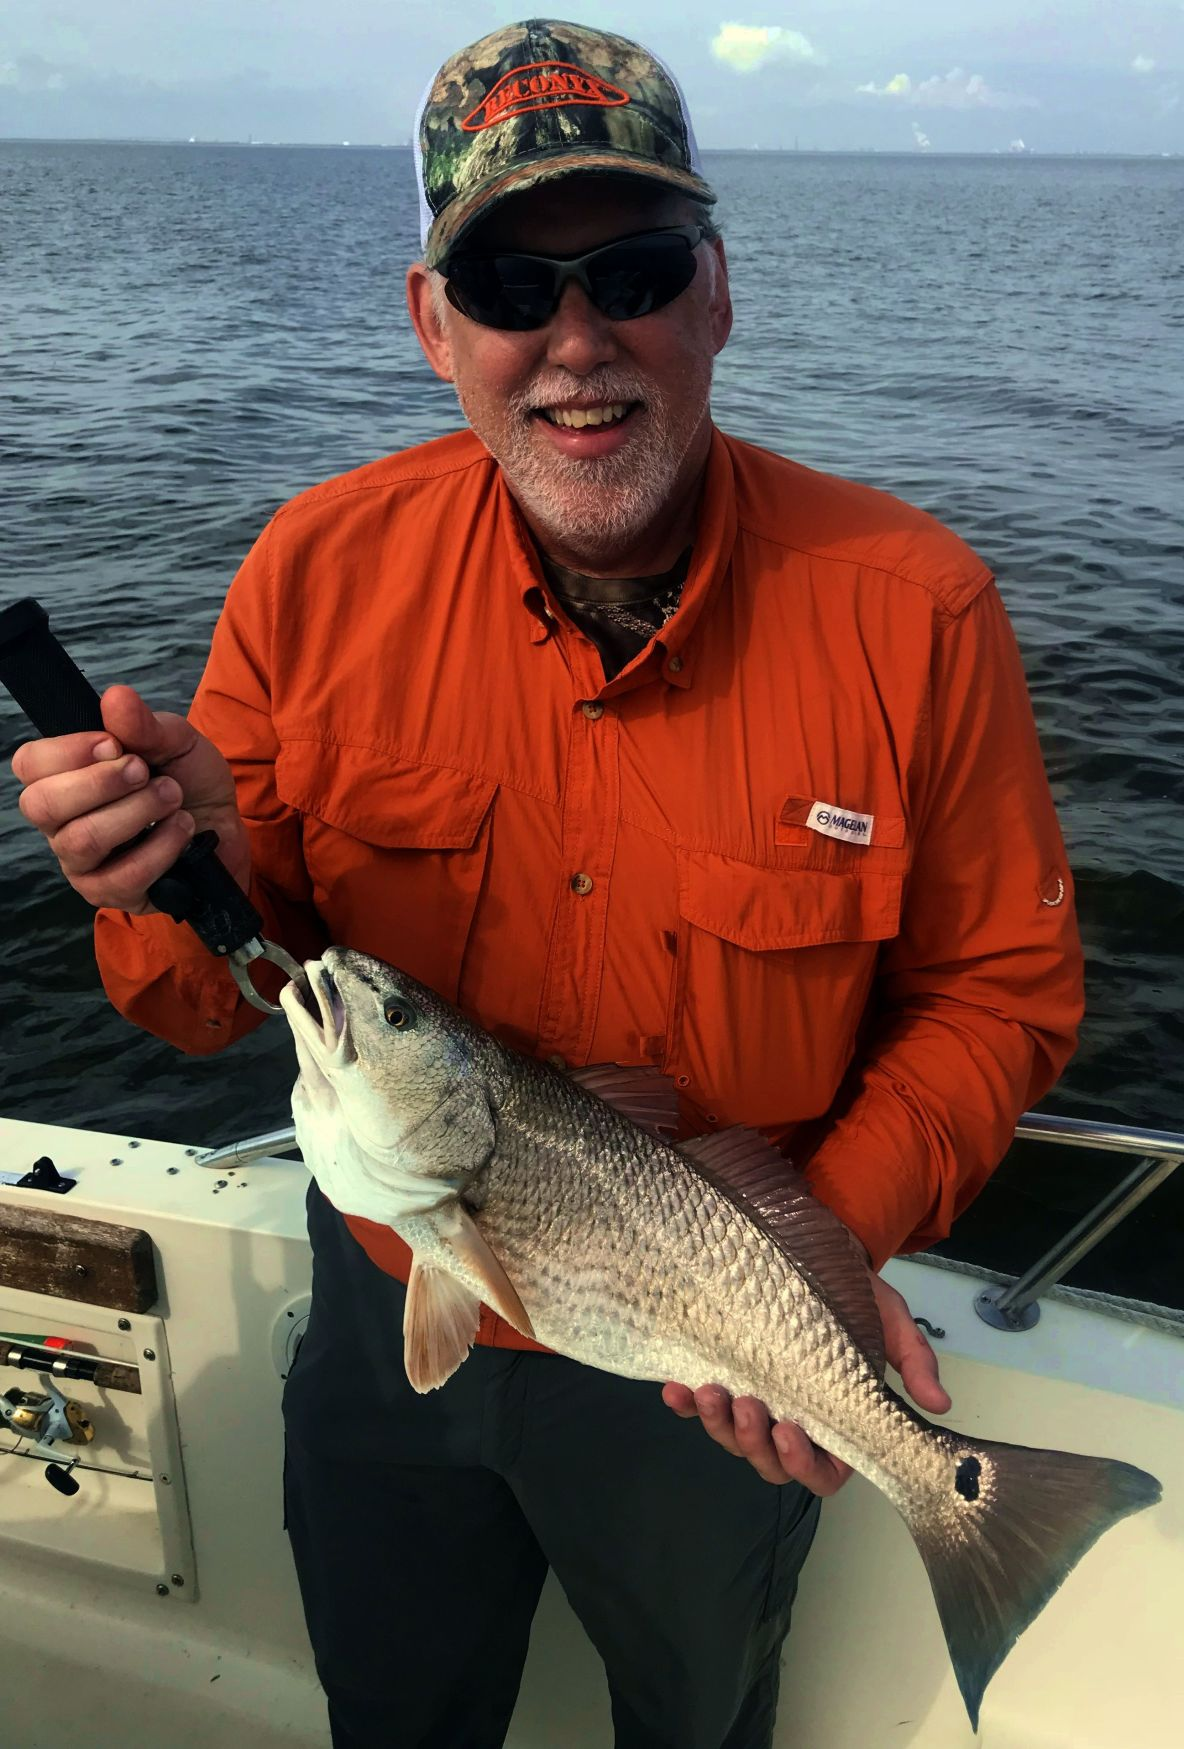 BOB MAINDELLE: From Central Texas to Gulf, fish are biting now ...